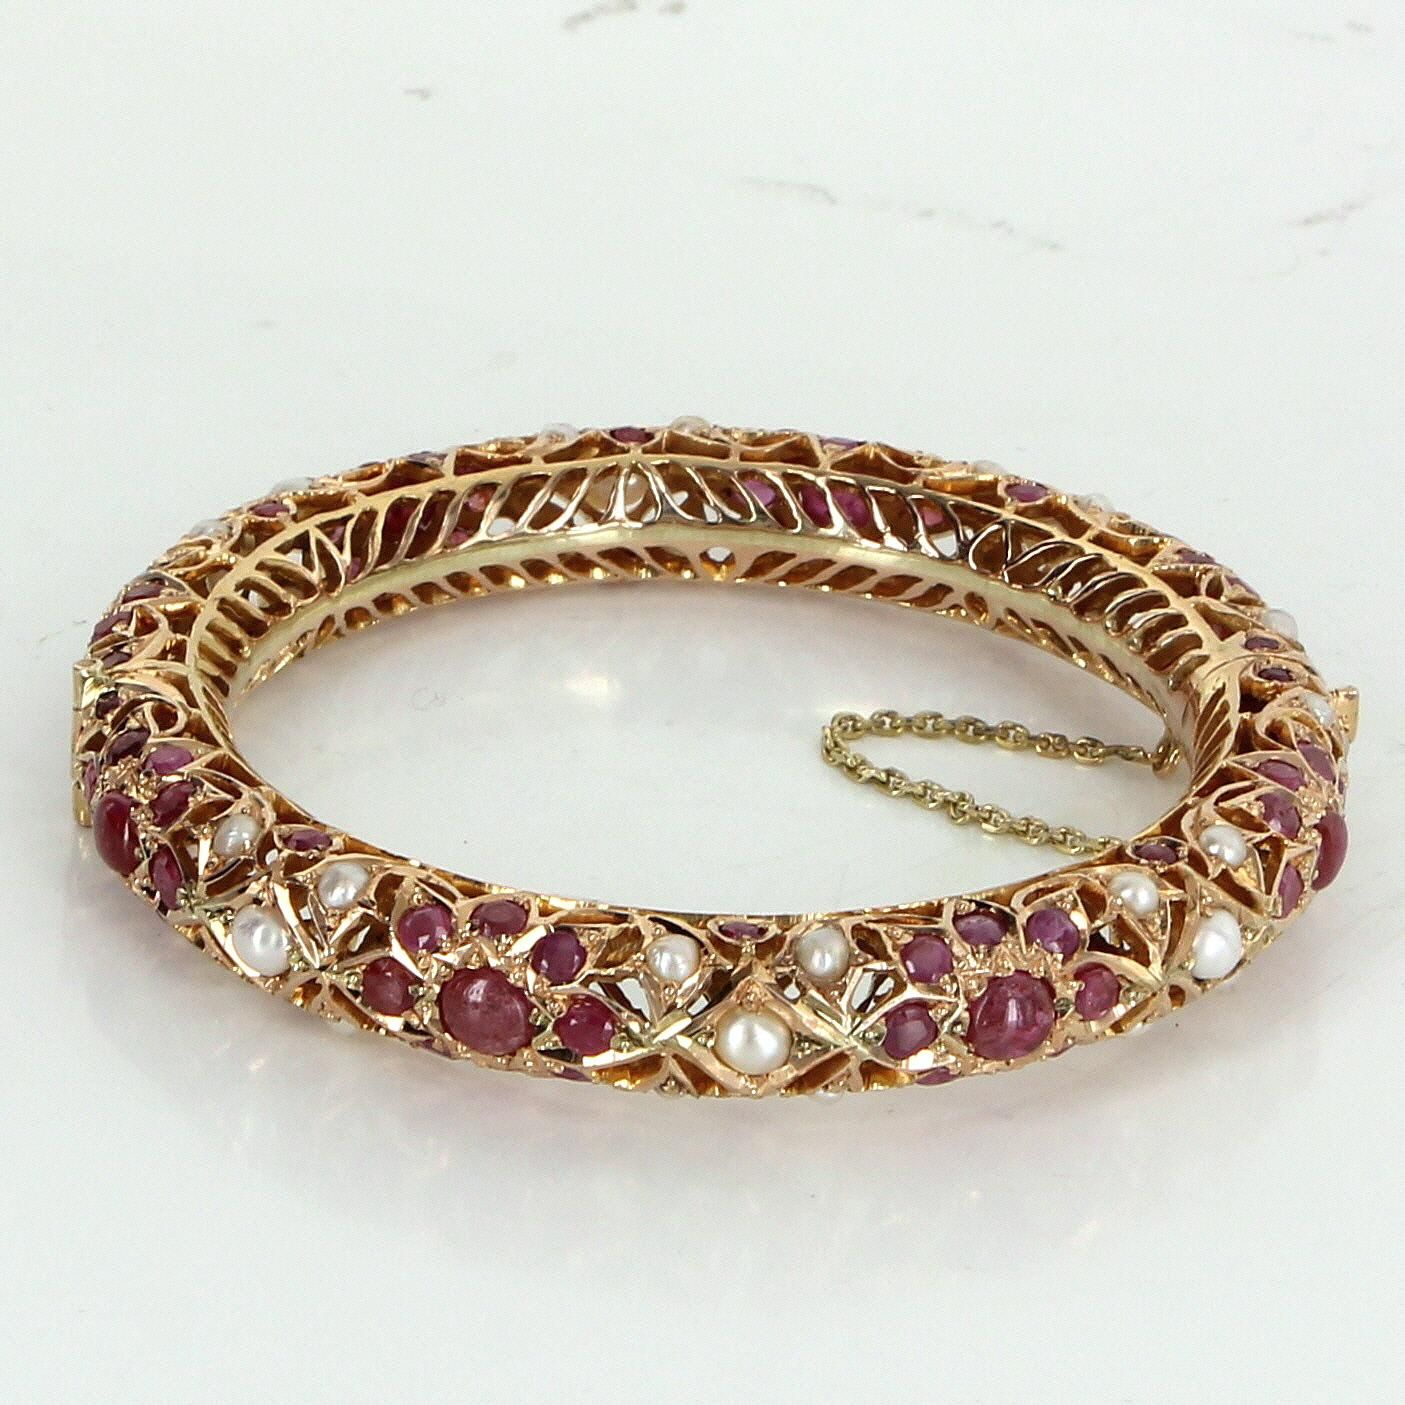 p product karat bracelets bangle bangles htm diamond